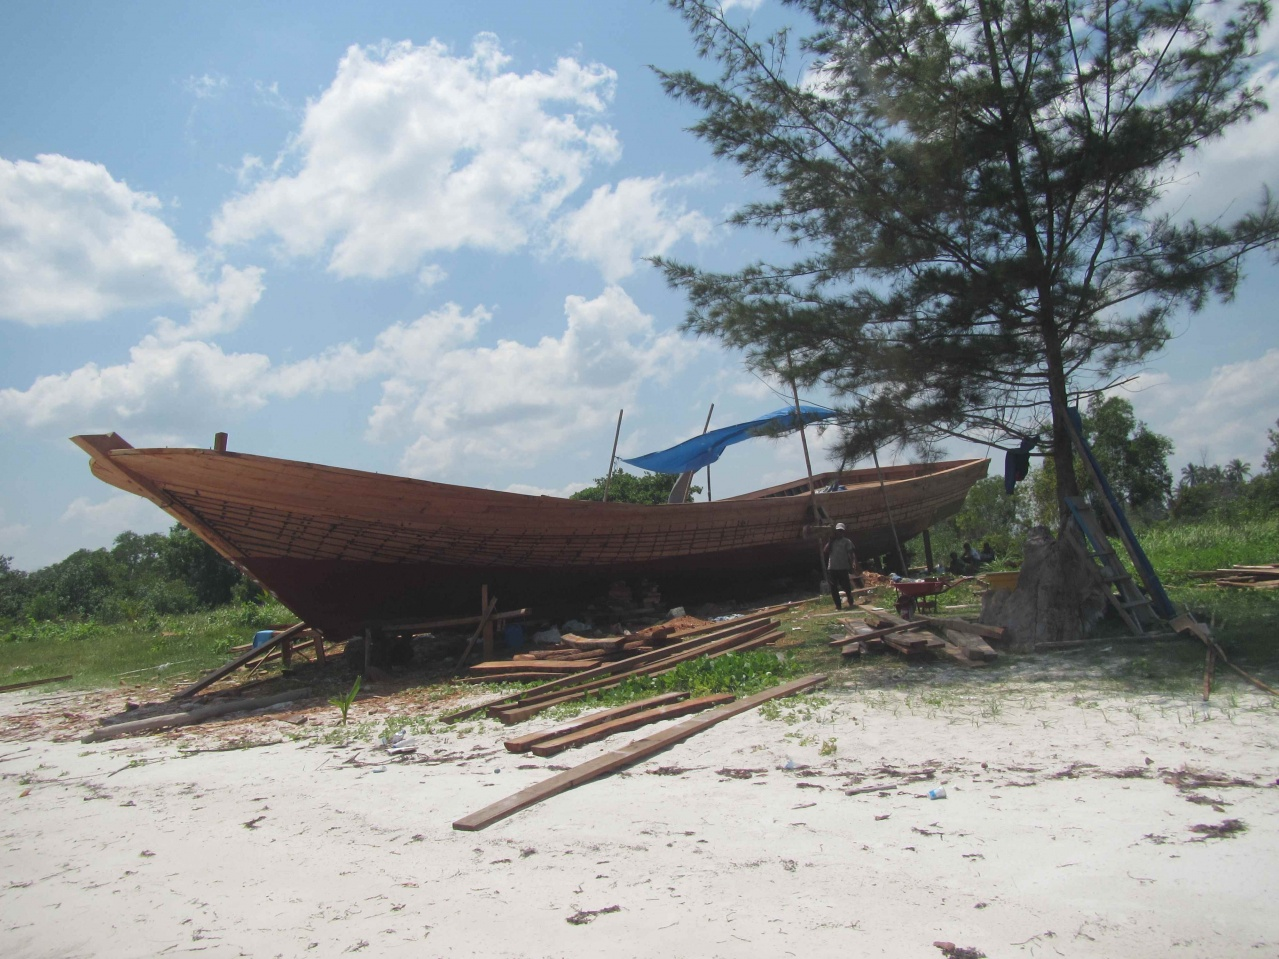 Click image for larger version  Name:Indonesian beach boat construction.jpg Views:52 Size:430.7 KB ID:113689